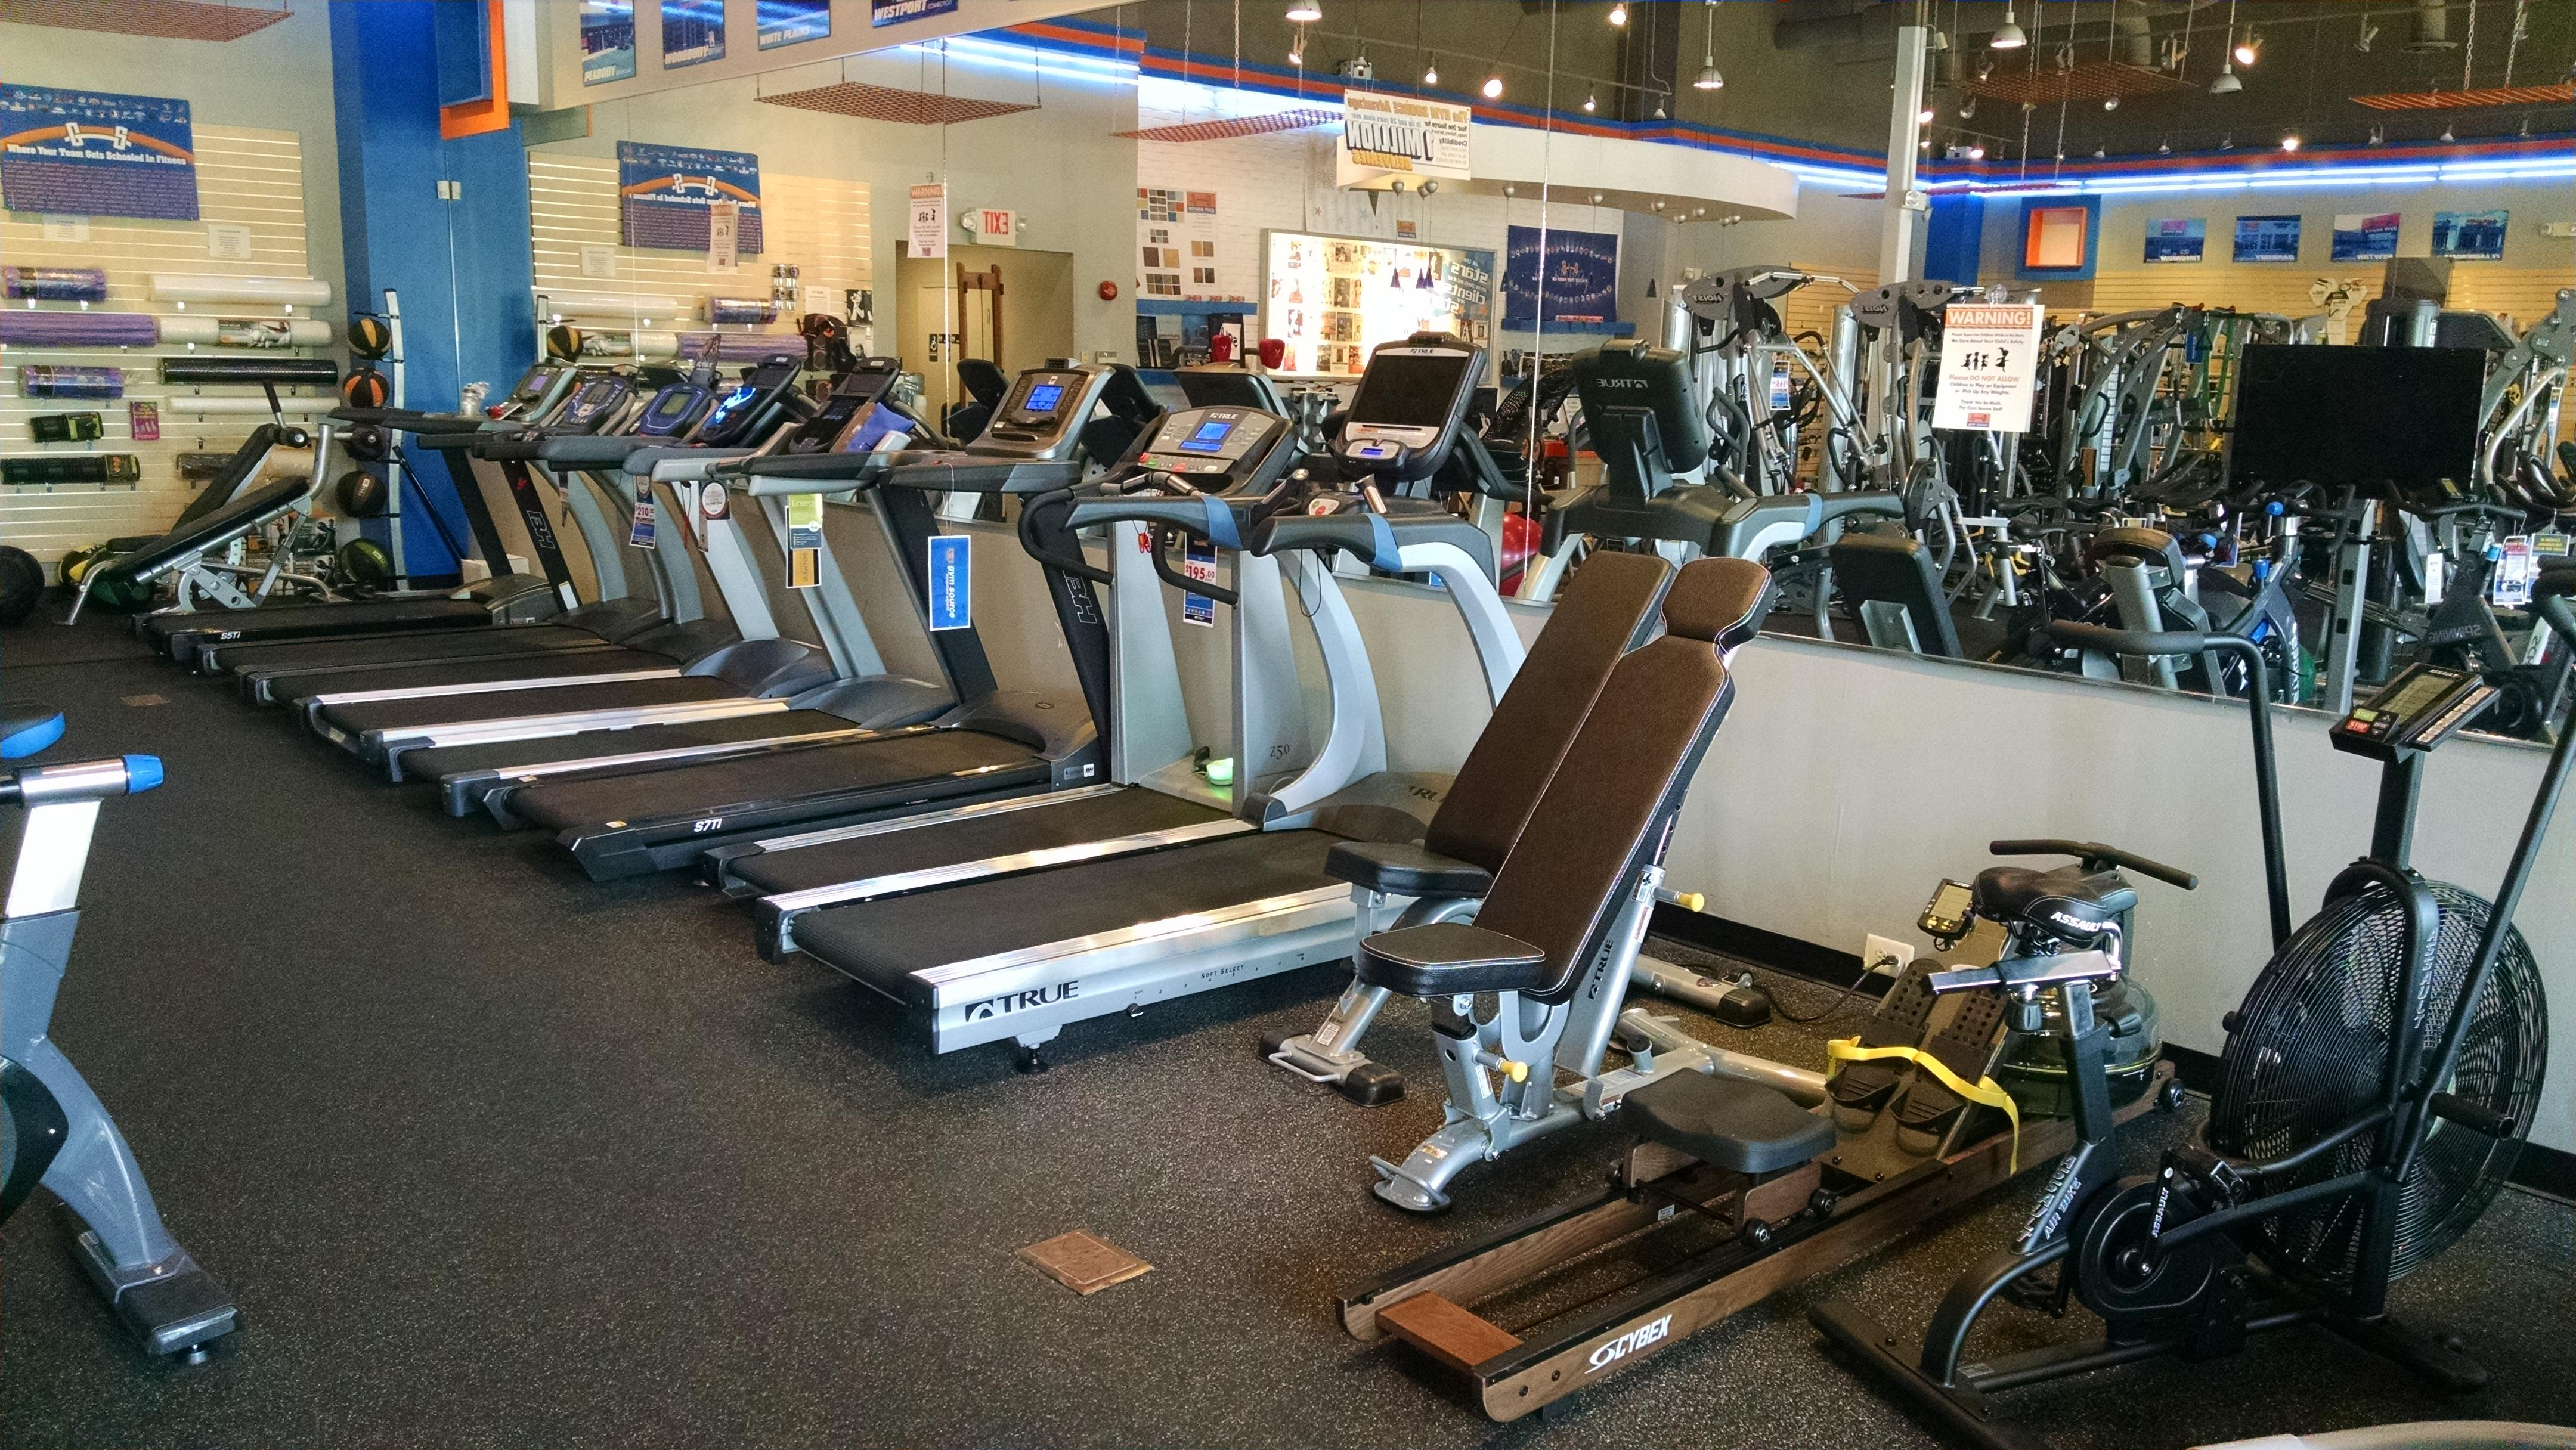 We have many treadmills to choose from! Come test them out and see which treadmill is right for you.